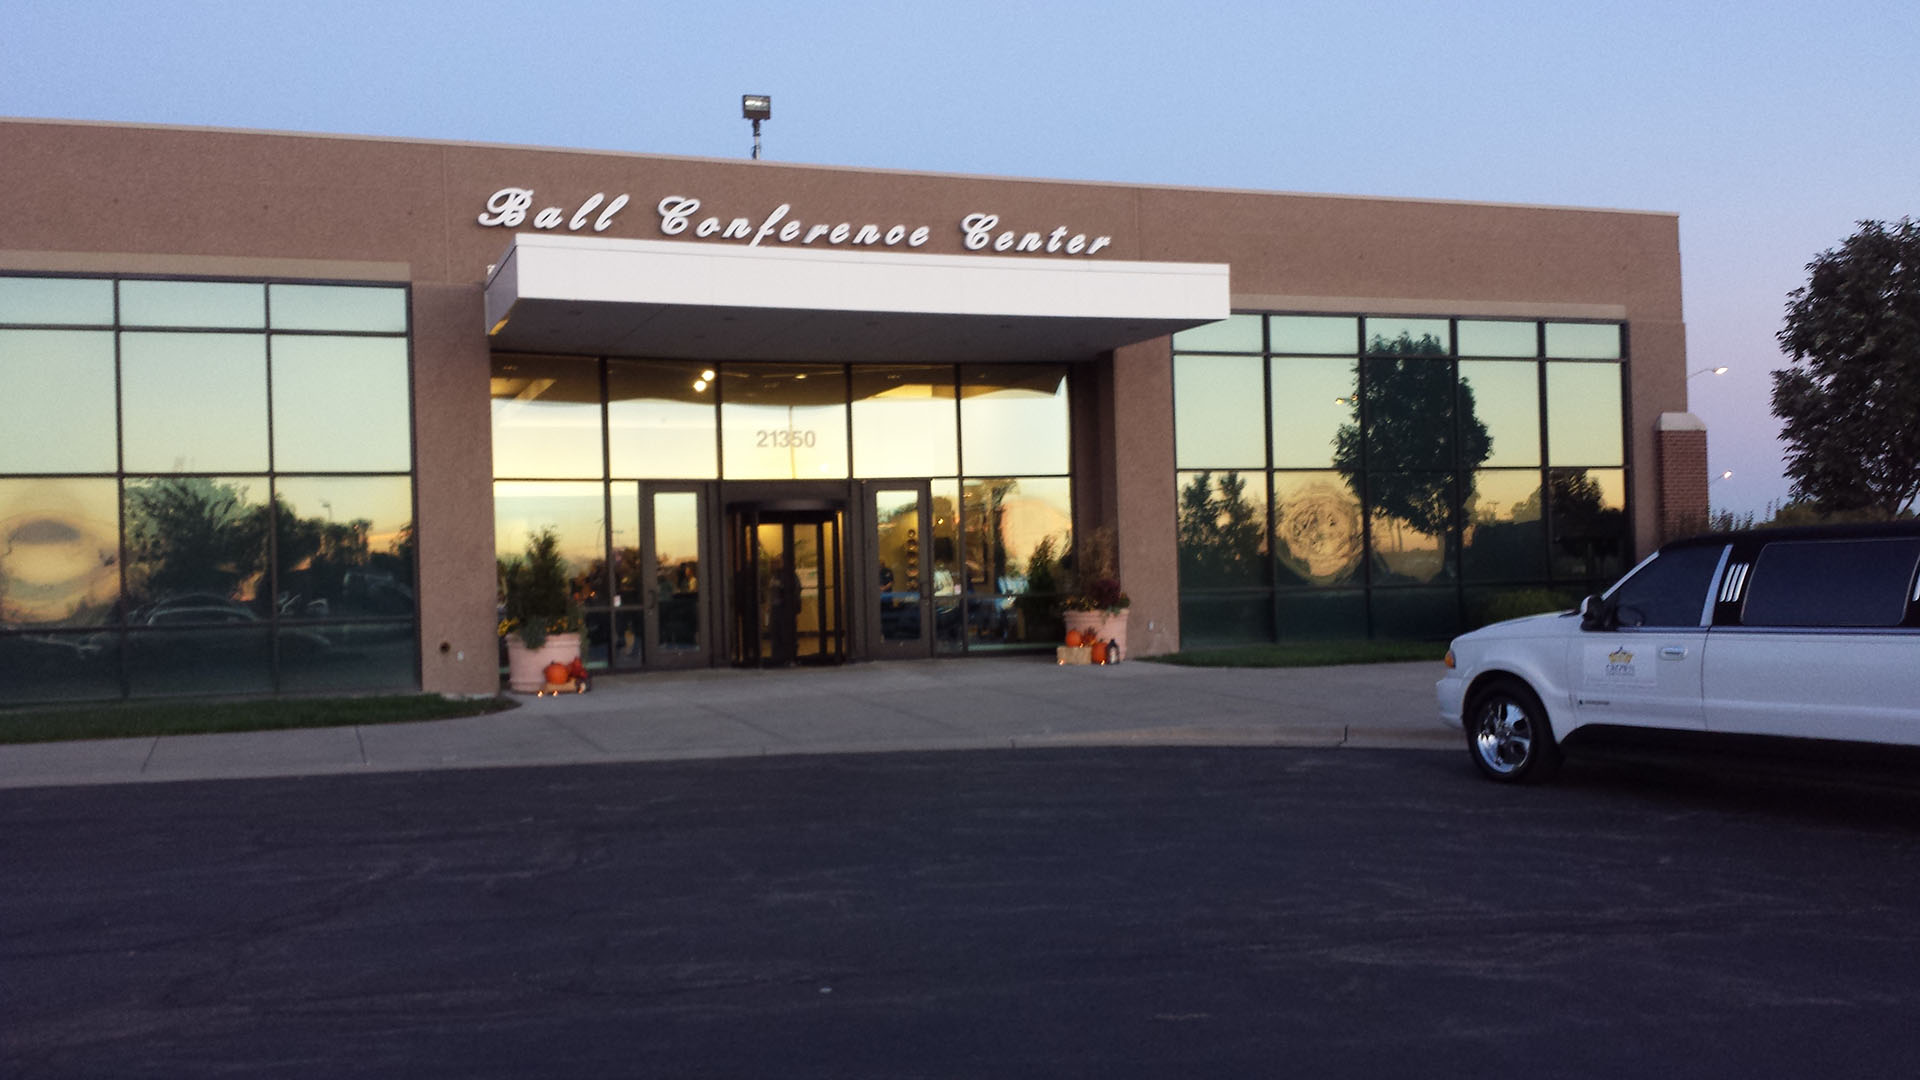 KVC and Ball Conference Center to Receive Extreme Heinen Landscape Makeover